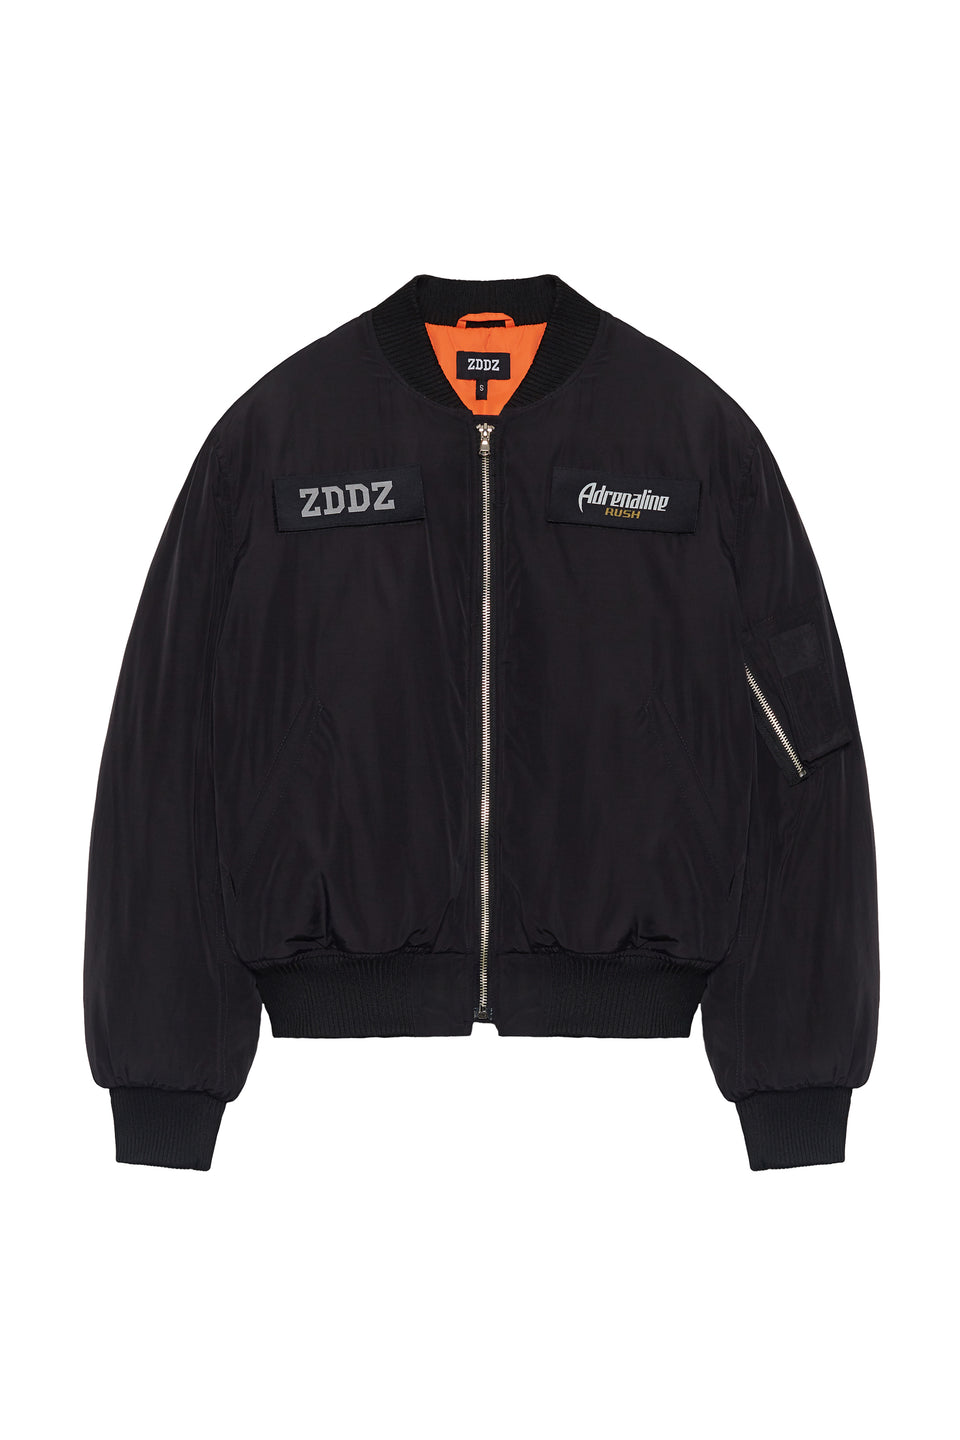 Bomber Jacket 'Safety Curtain' - ZDDZ x Adrenaline Rush Collaboration